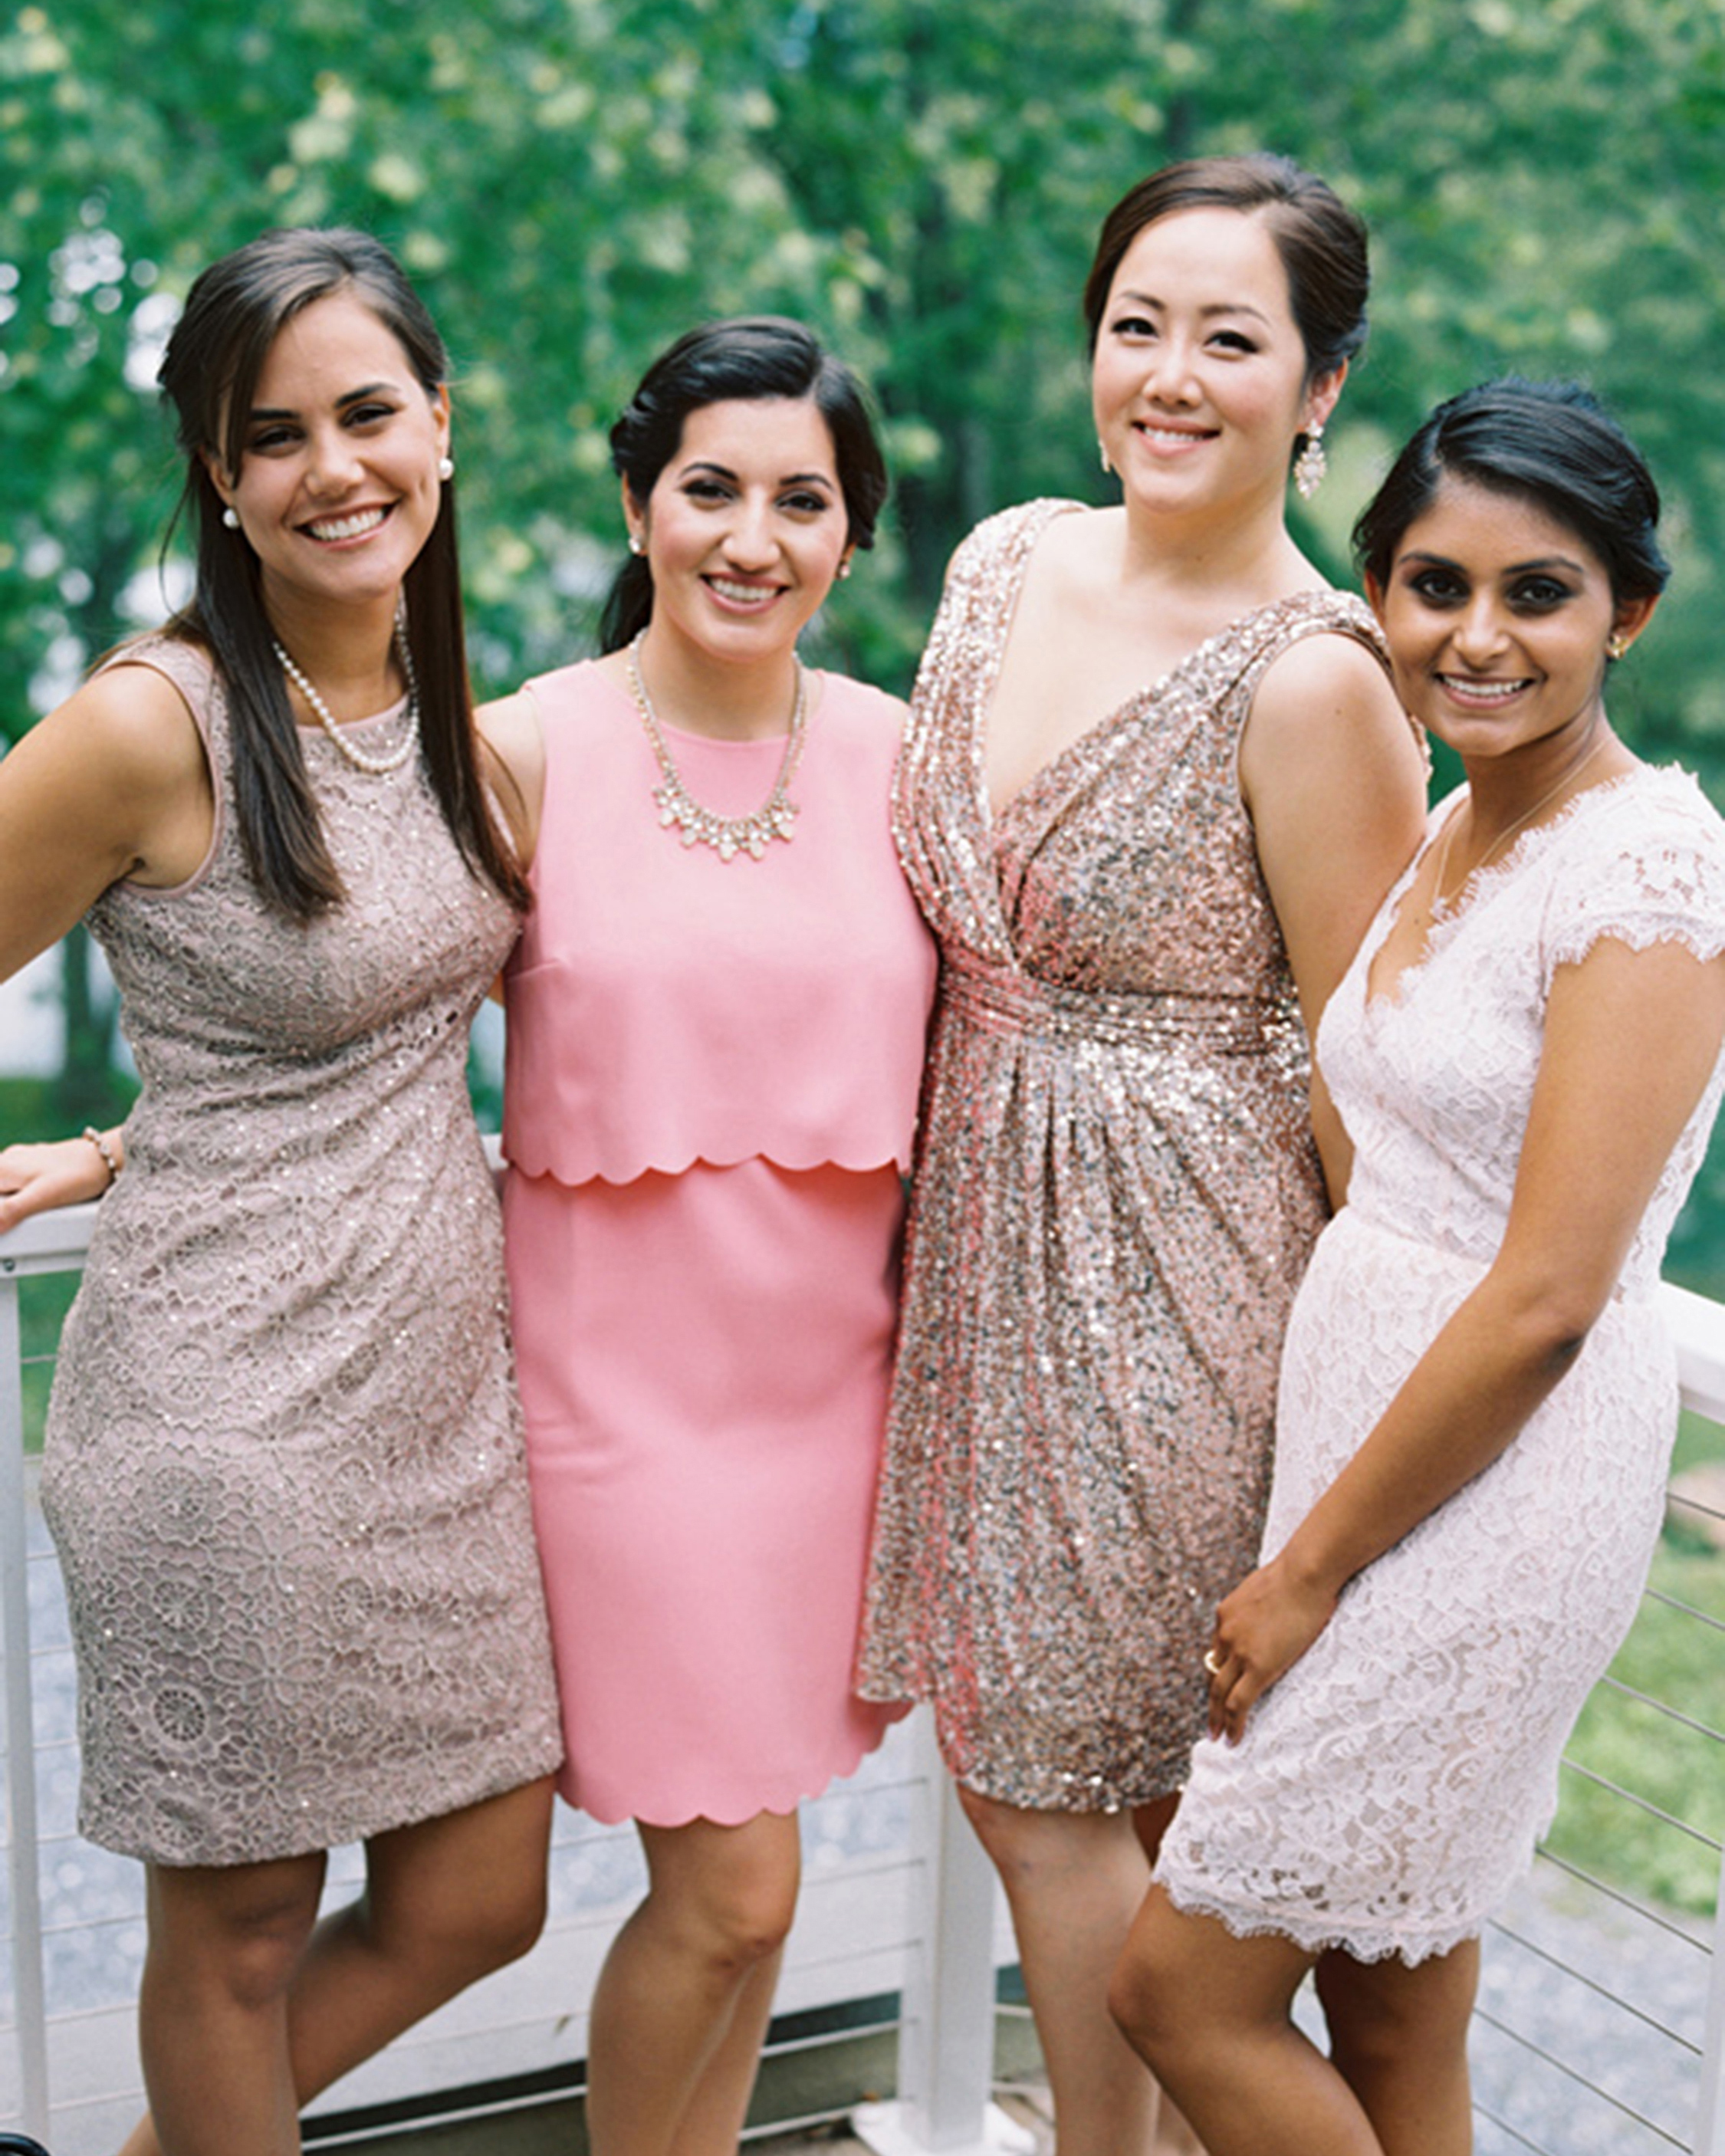 The Dos and Don'ts of Dressing for a Spring Wedding